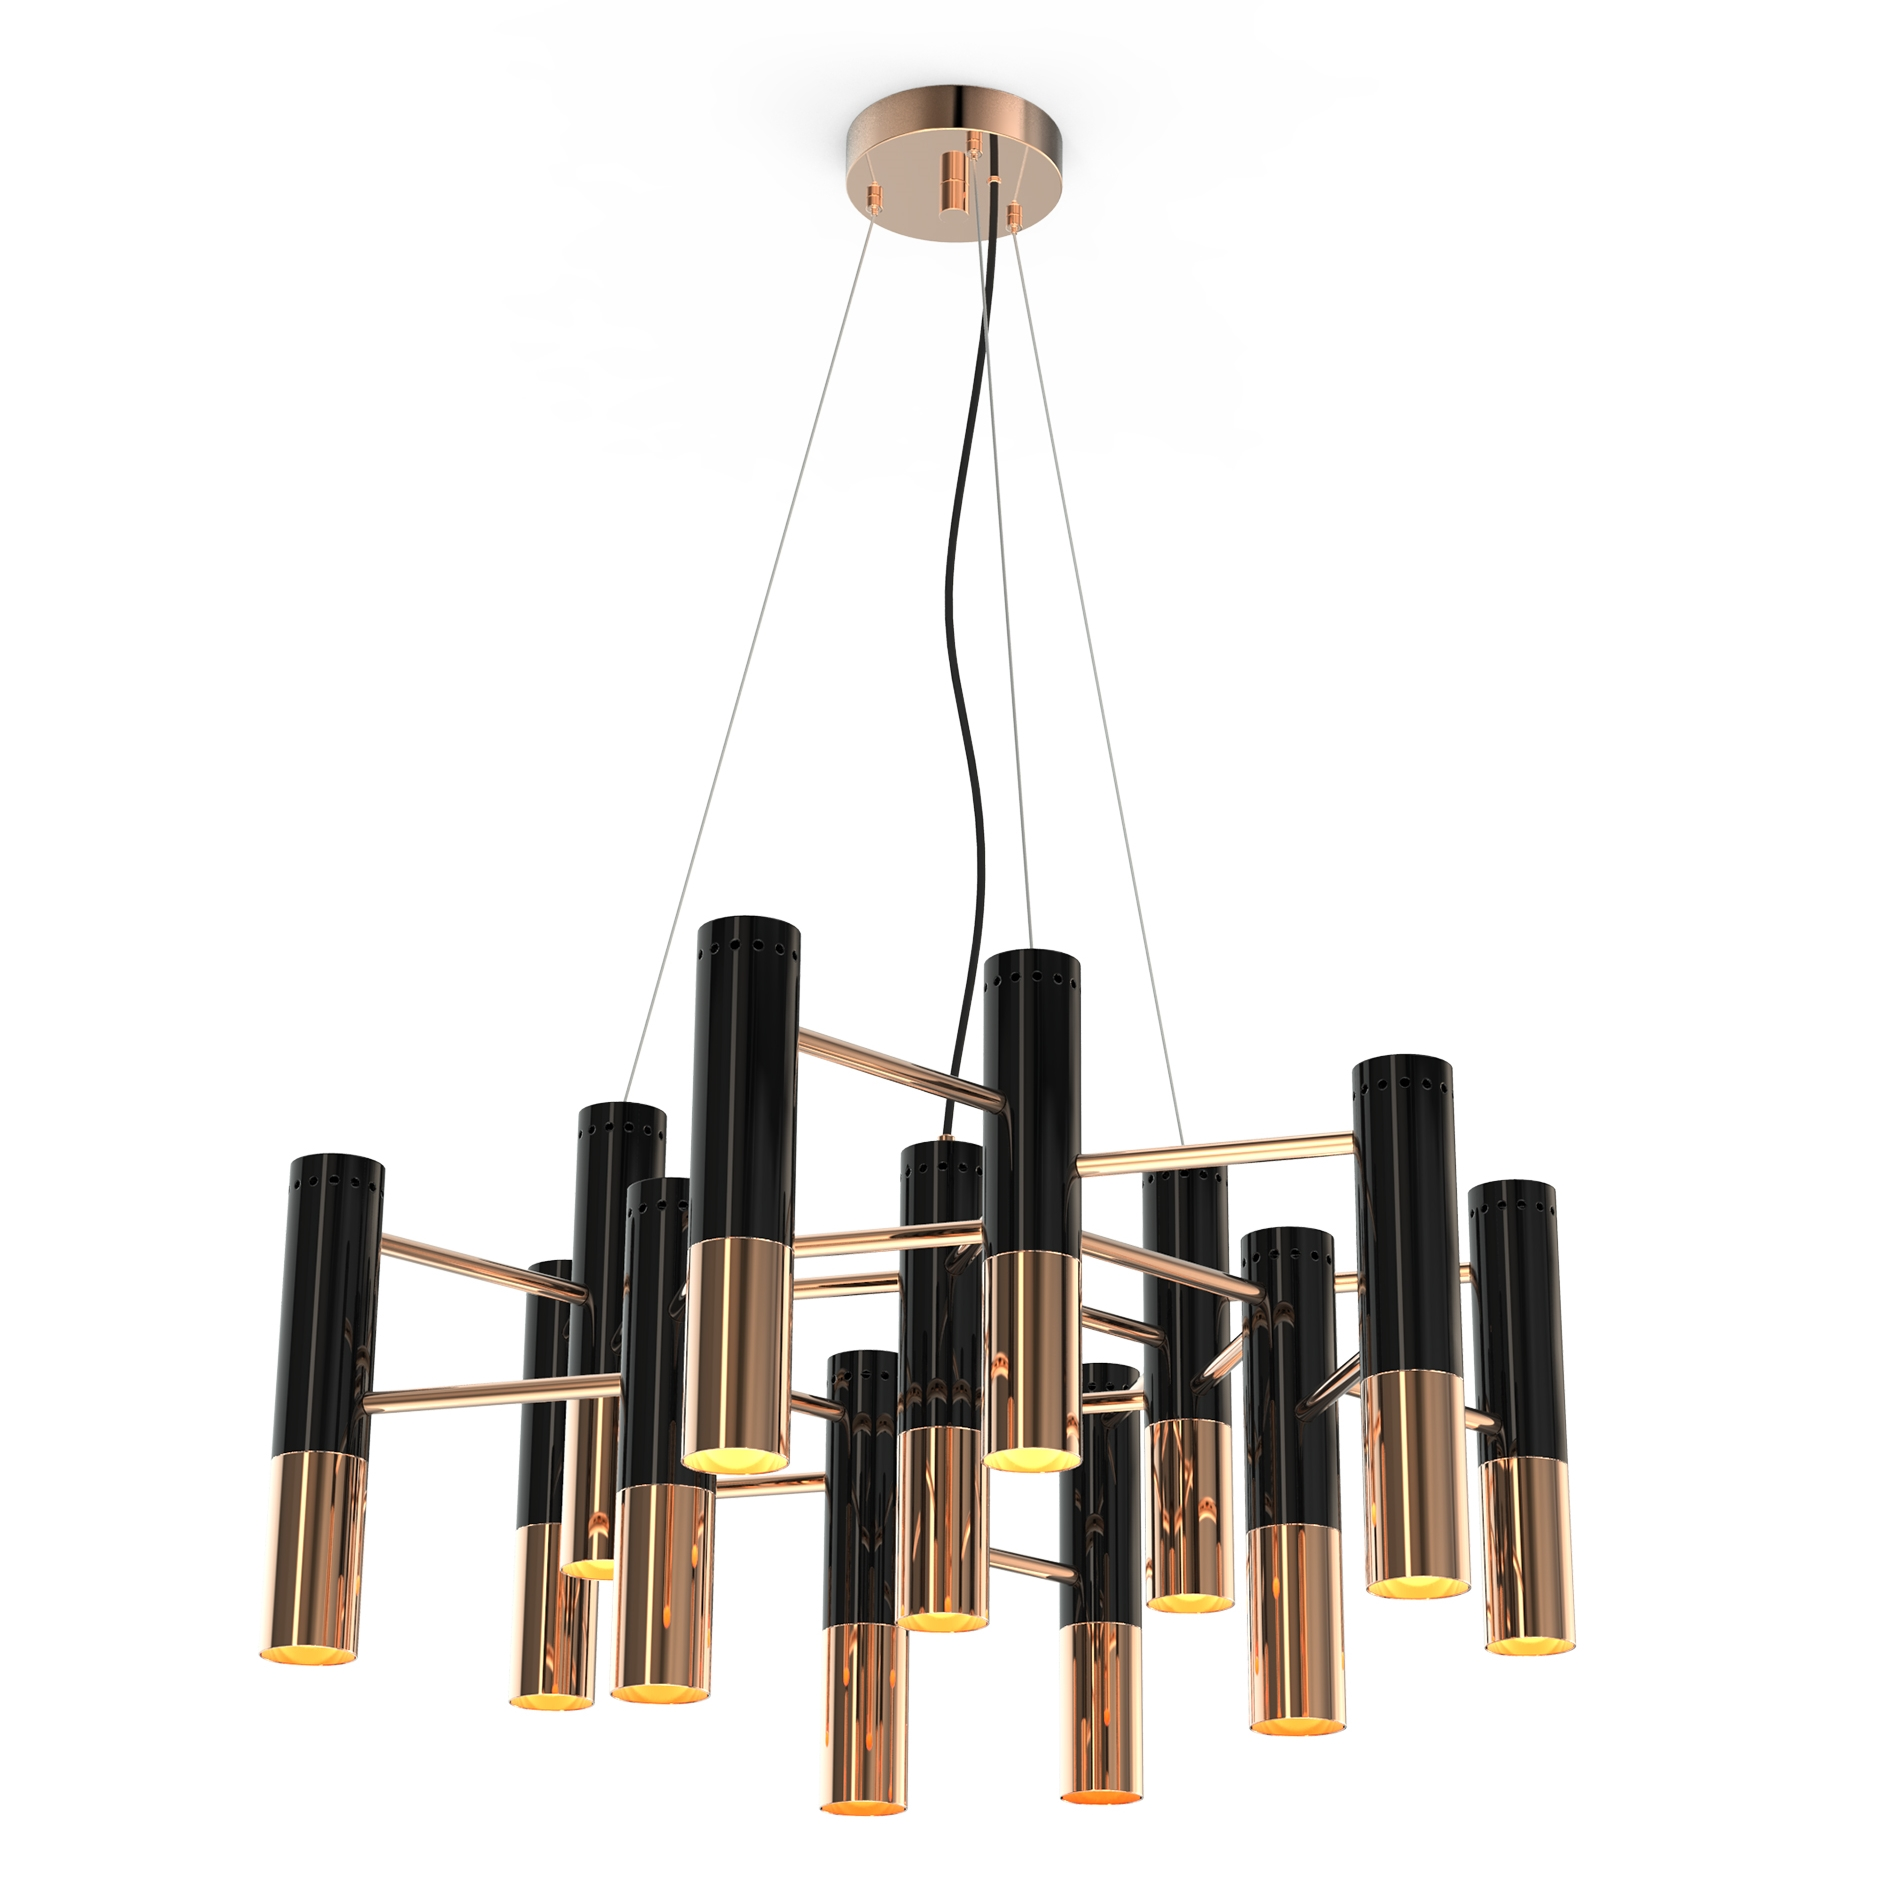 Answered Minimalist Lighting Designs Are a Fan Favourite 4